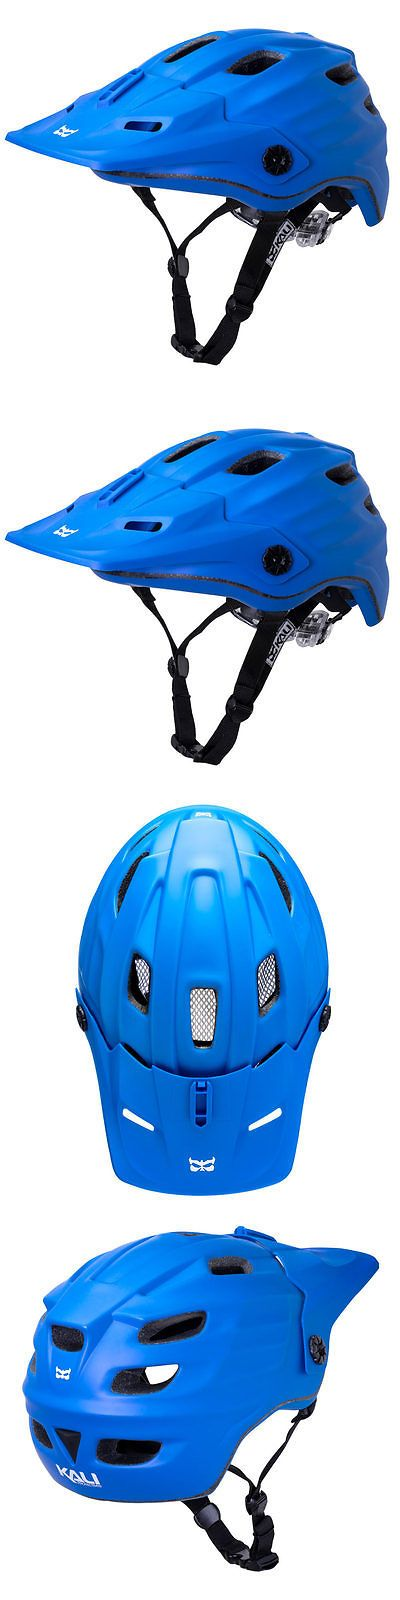 Helmets 70911: Kali Protectives Maya Helmet Large X-Large Solid Matte Blue -> BUY IT NOW ONLY: $68.1 on eBay!